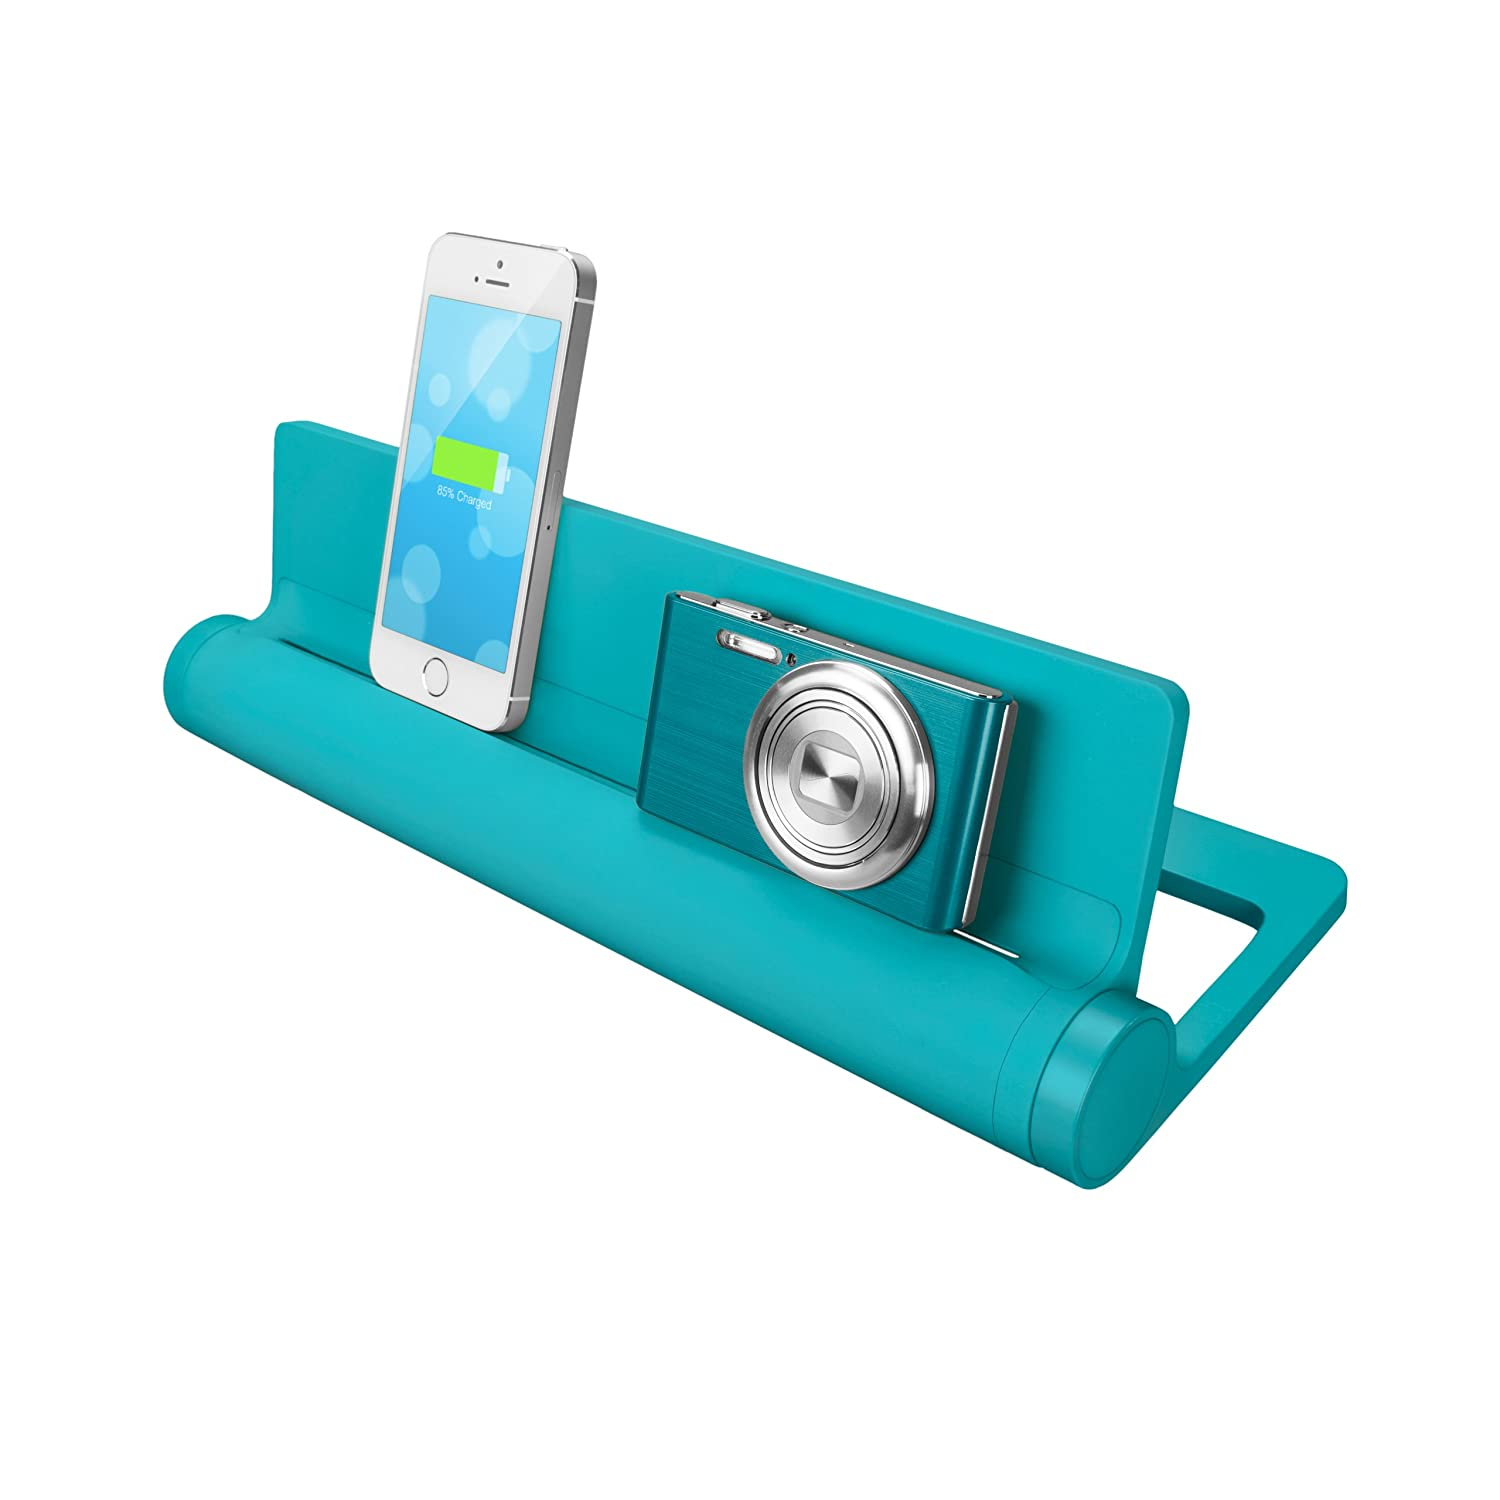 Quirky PCVG3-TL01 Converge Universal USB Docking Station, Teal Quirky Inc.